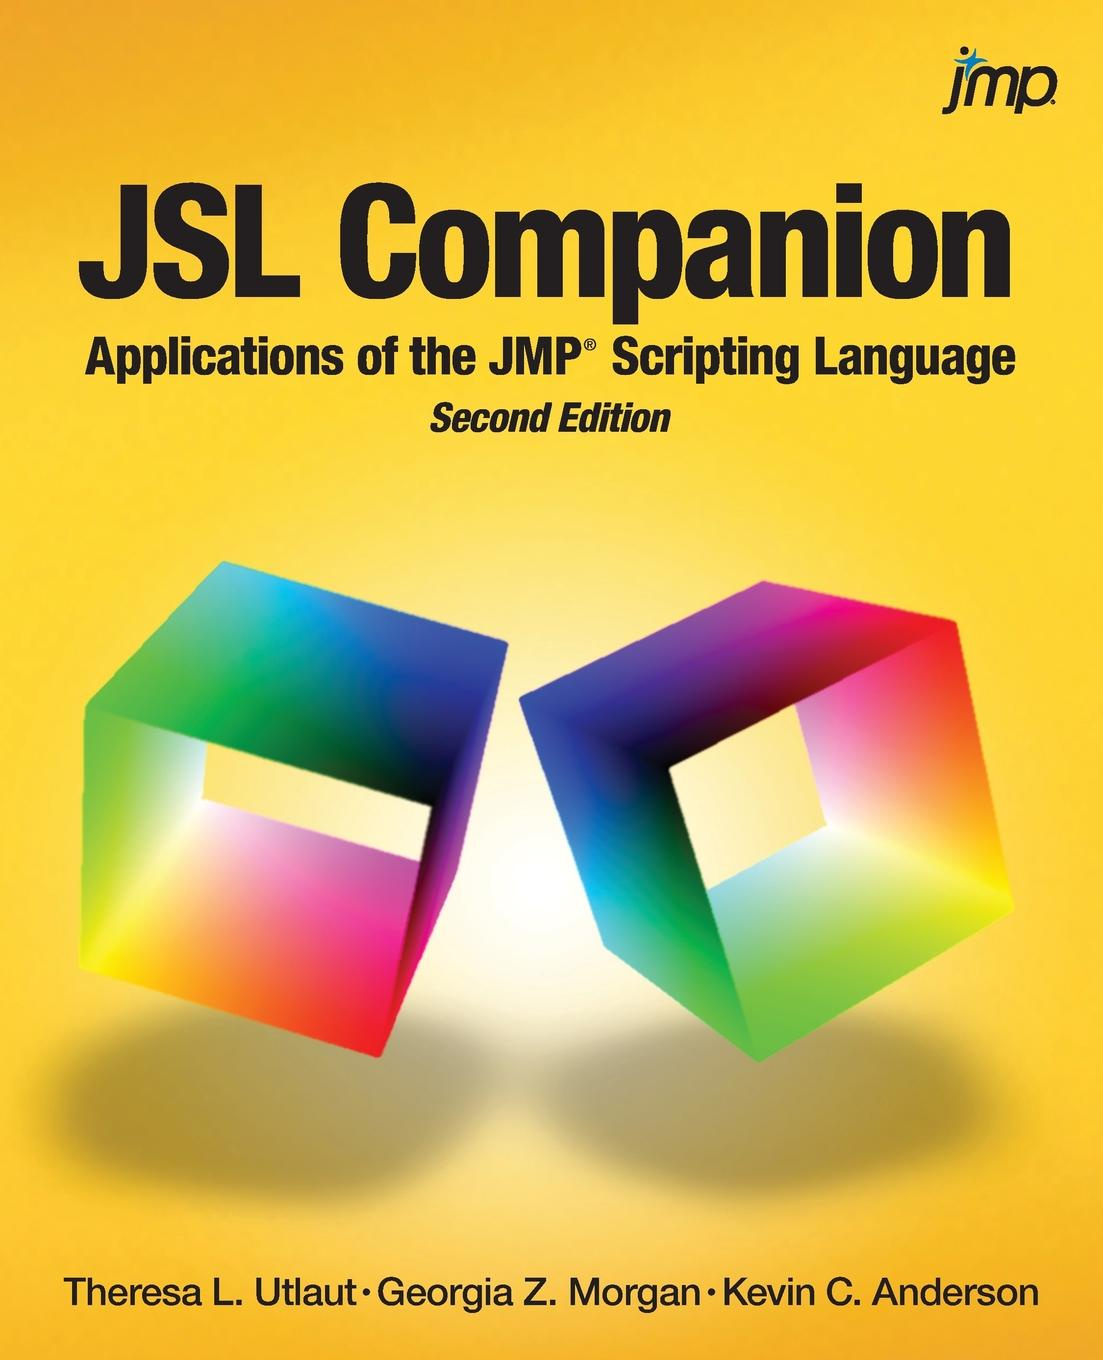 Theresa Utlaut, Georgia Morgan, Kevin Anderson JSL Companion. Applications of the JMP Scripting Language, Second Edition michael fitzgerald building b2b applications with xml a resource guide